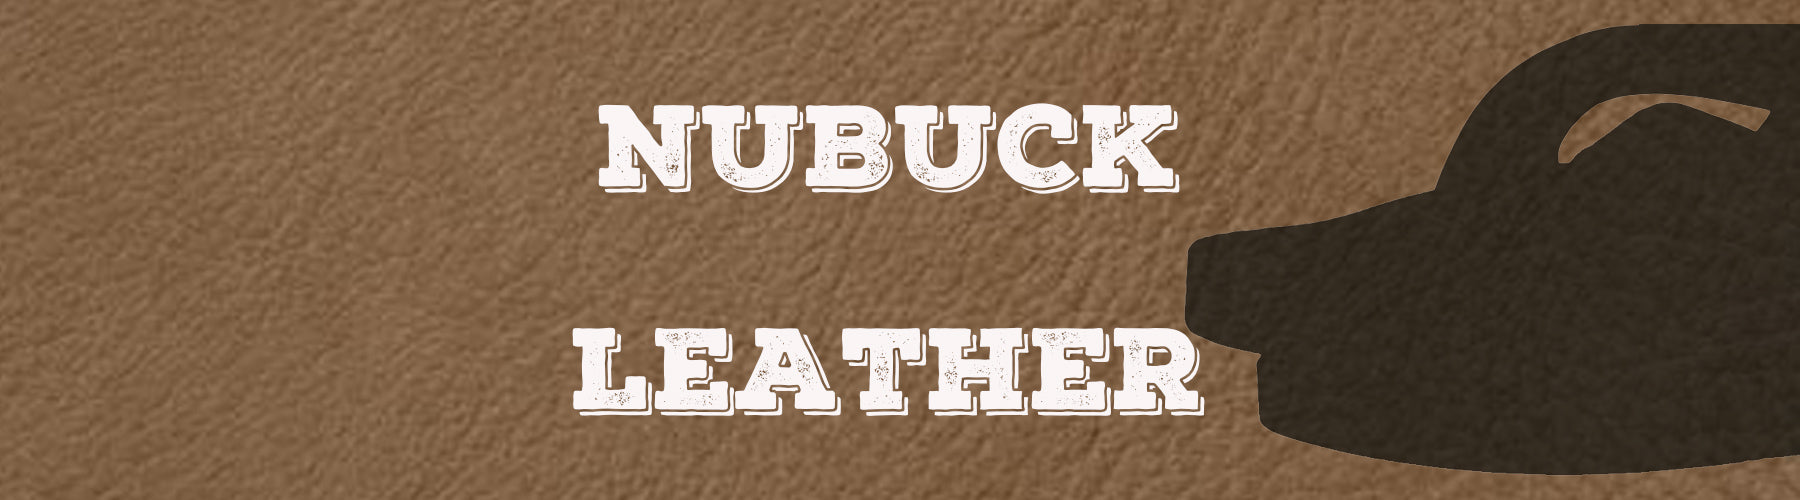 Nubuck Leather: Silky Soft, Long Lasting Quality